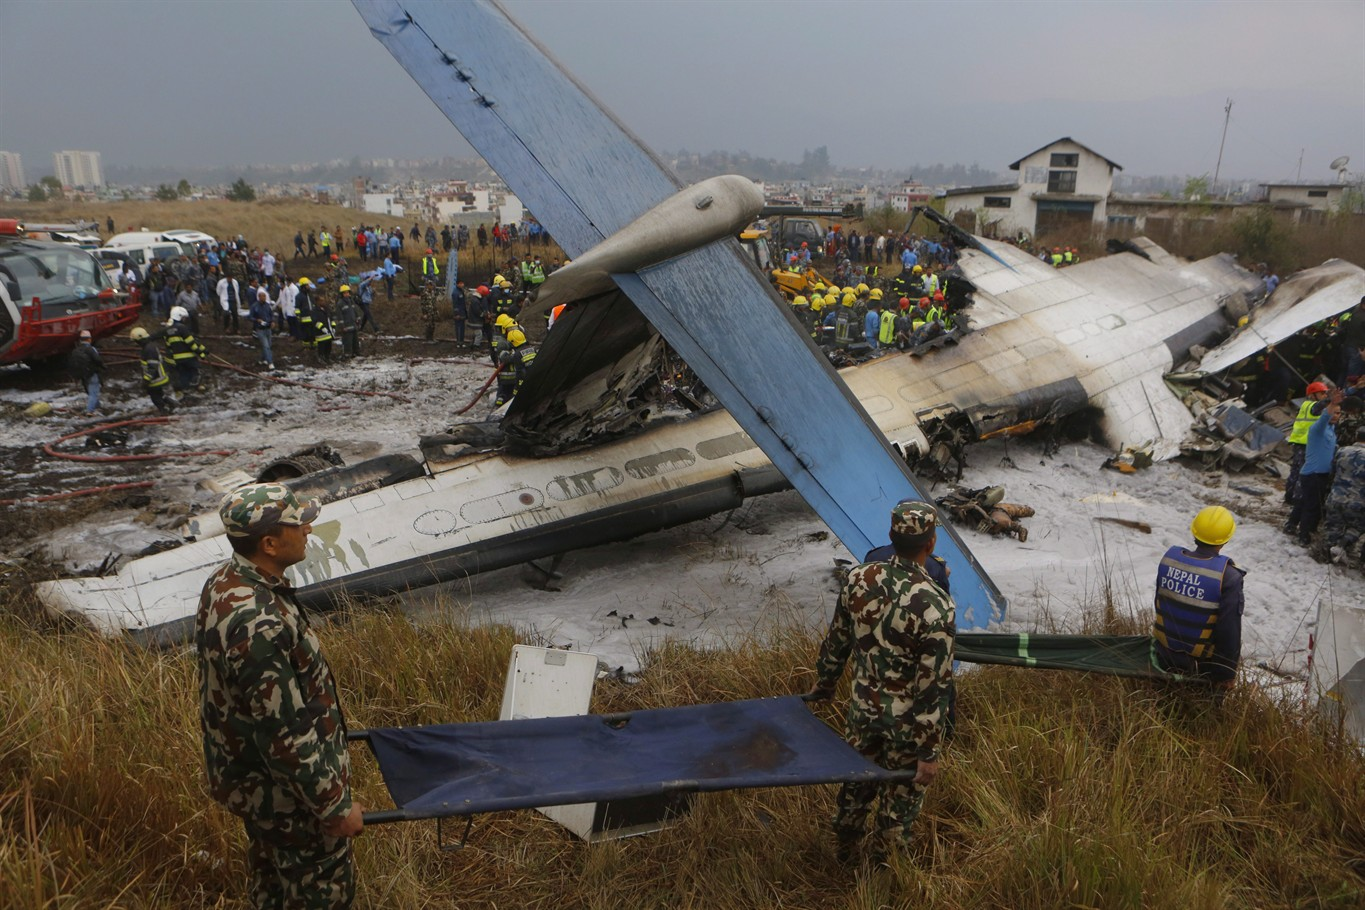 Bombardier sending officials to Nepal to help with plane crash investigation.